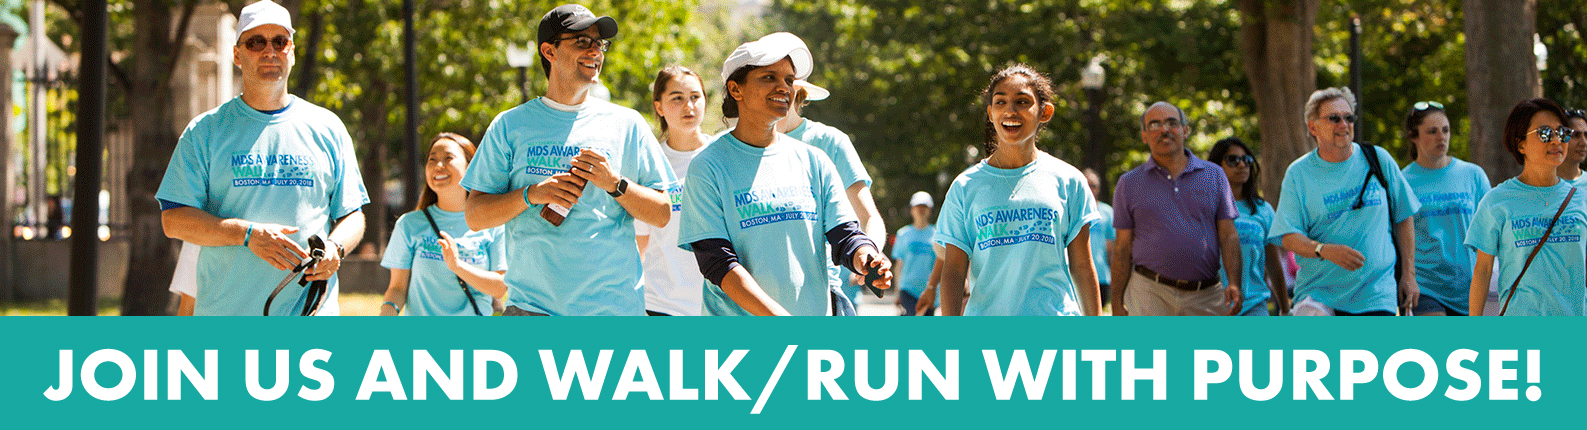 Join us and walk/run with purpose!